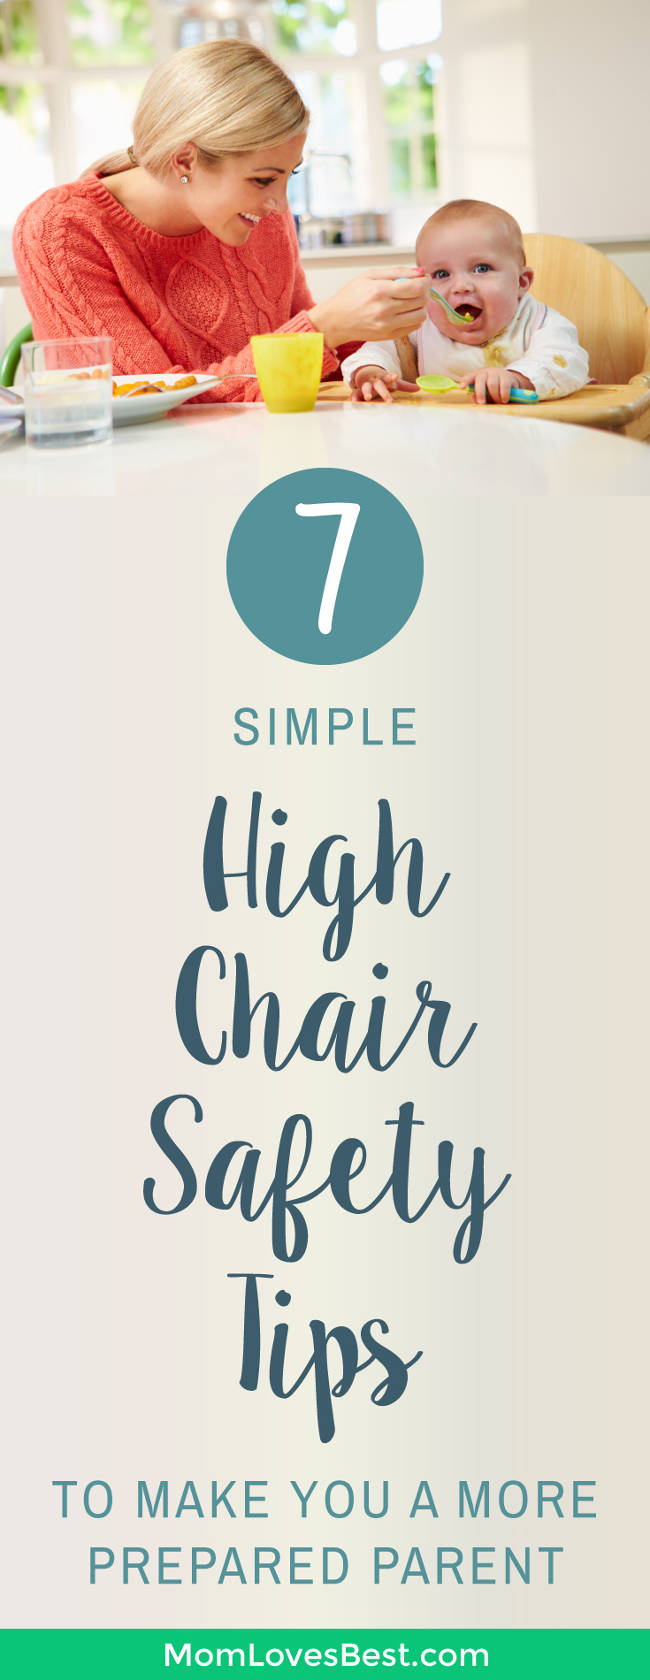 Do you have a high chair? Aside from simply buckling the straps, have you ever given much thought to safety? Each year, thousands of children are injured as a result of high chair related accidents. To prevent this from happening to your child, it's important to take certain precautions when using a high chair or booster seat. Here's everything you need to know to keep your child safe in their high chair. #highchairs #baby #motherhood #momlife #parentingtips